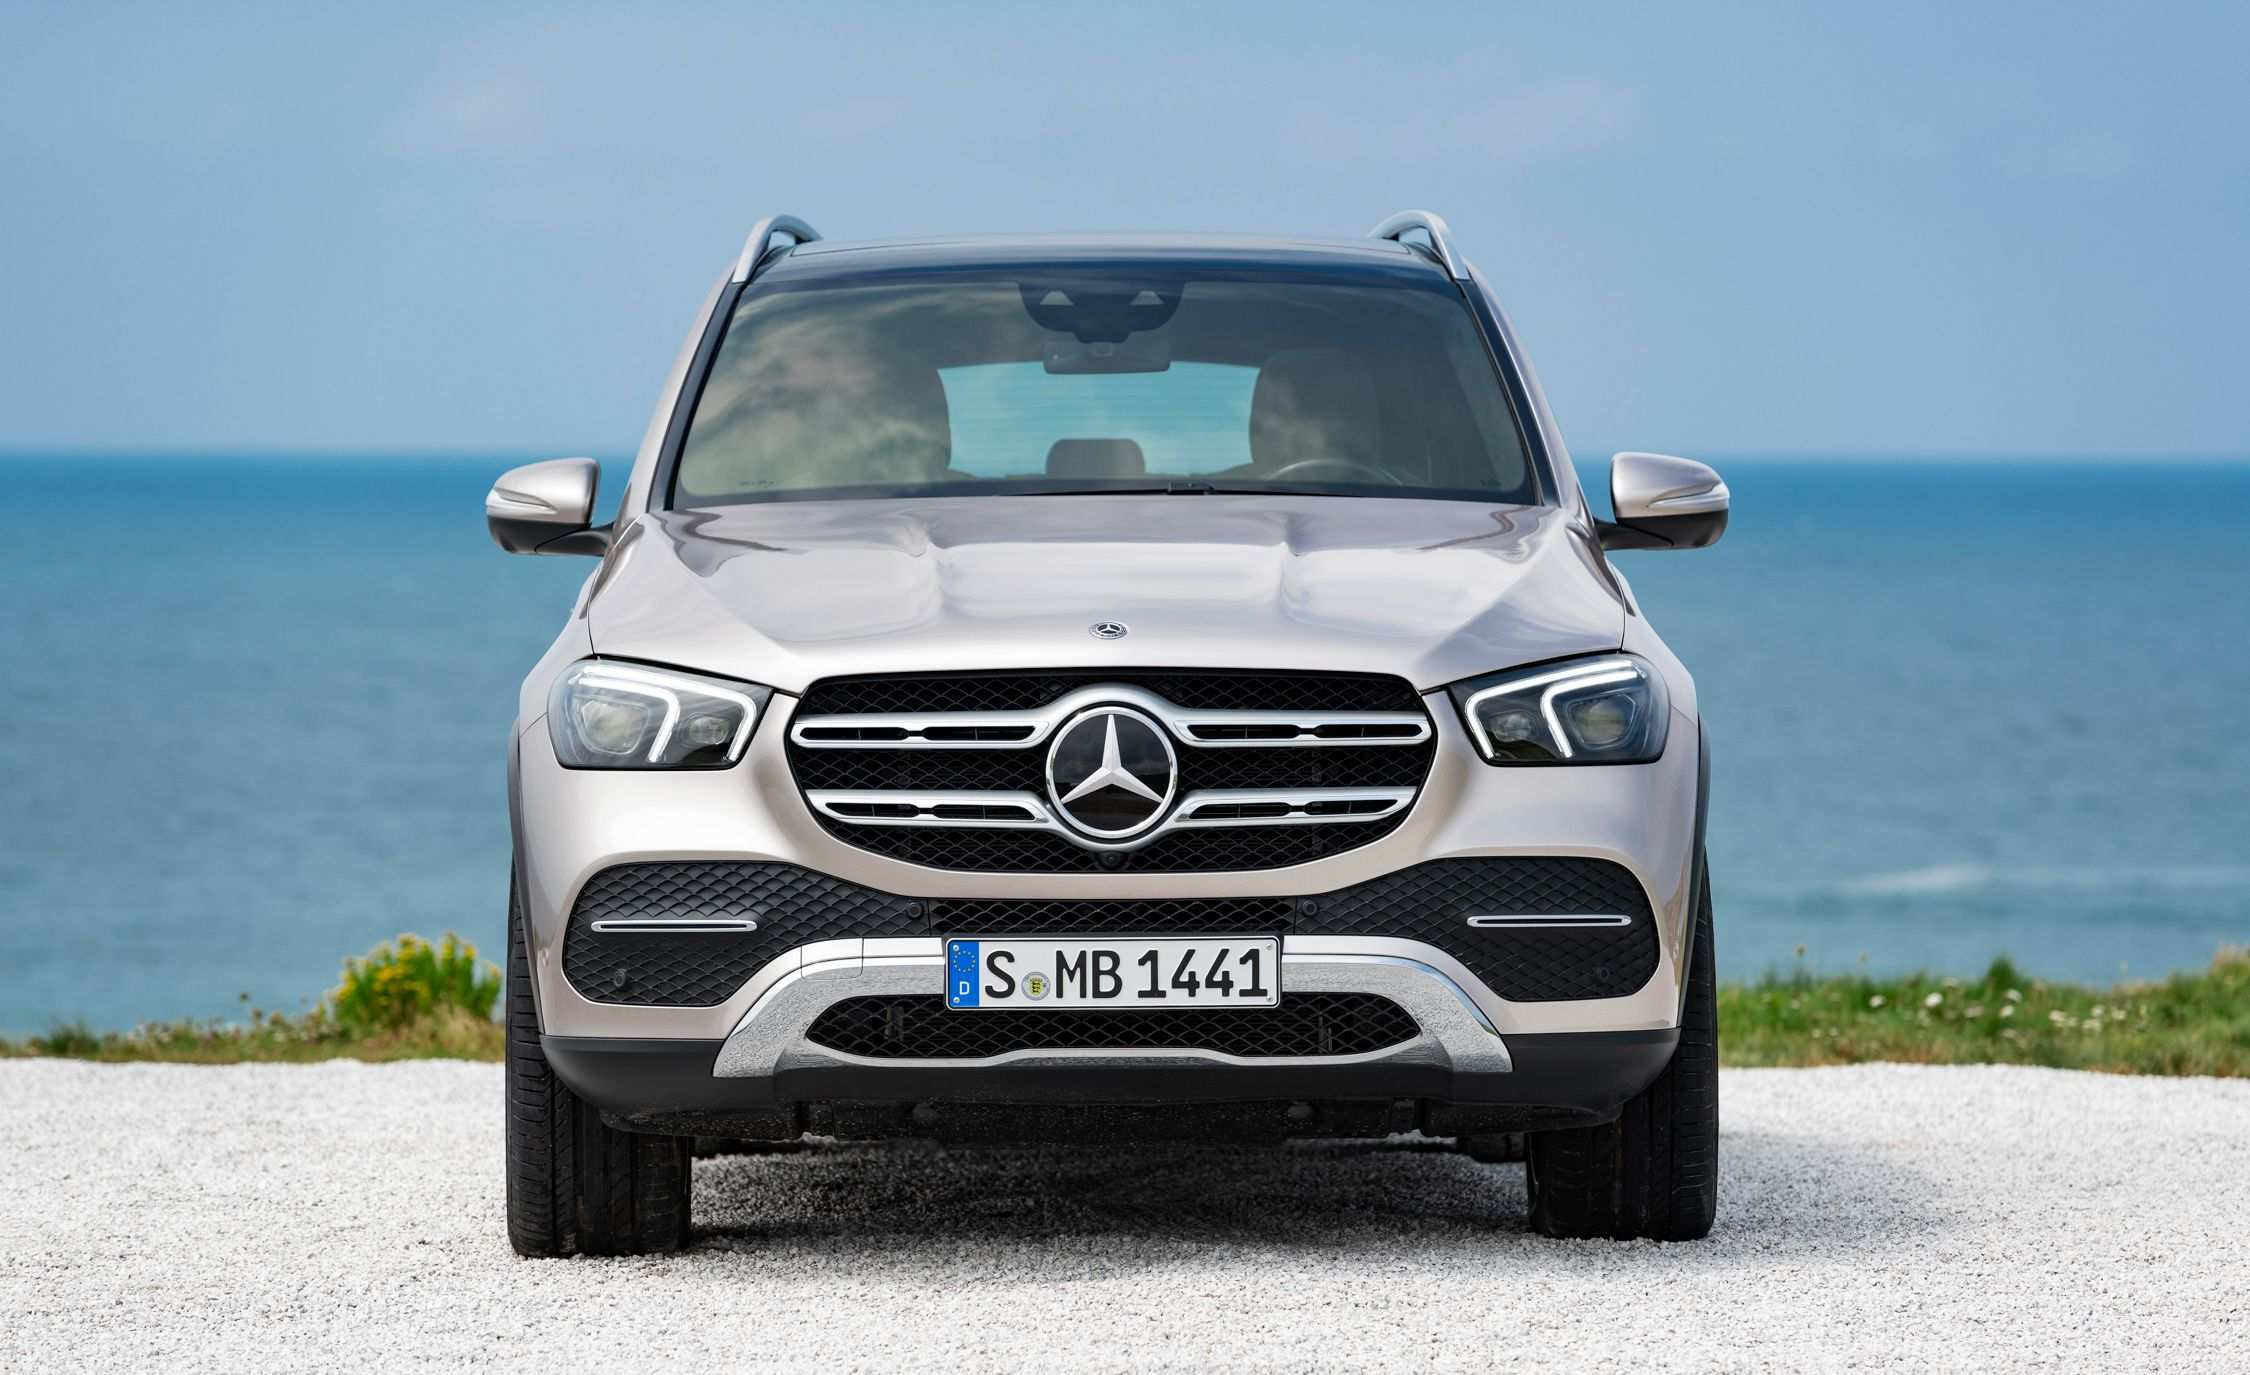 46 New 2020 Mercedes ML Class 400 Configurations for 2020 Mercedes ML Class 400